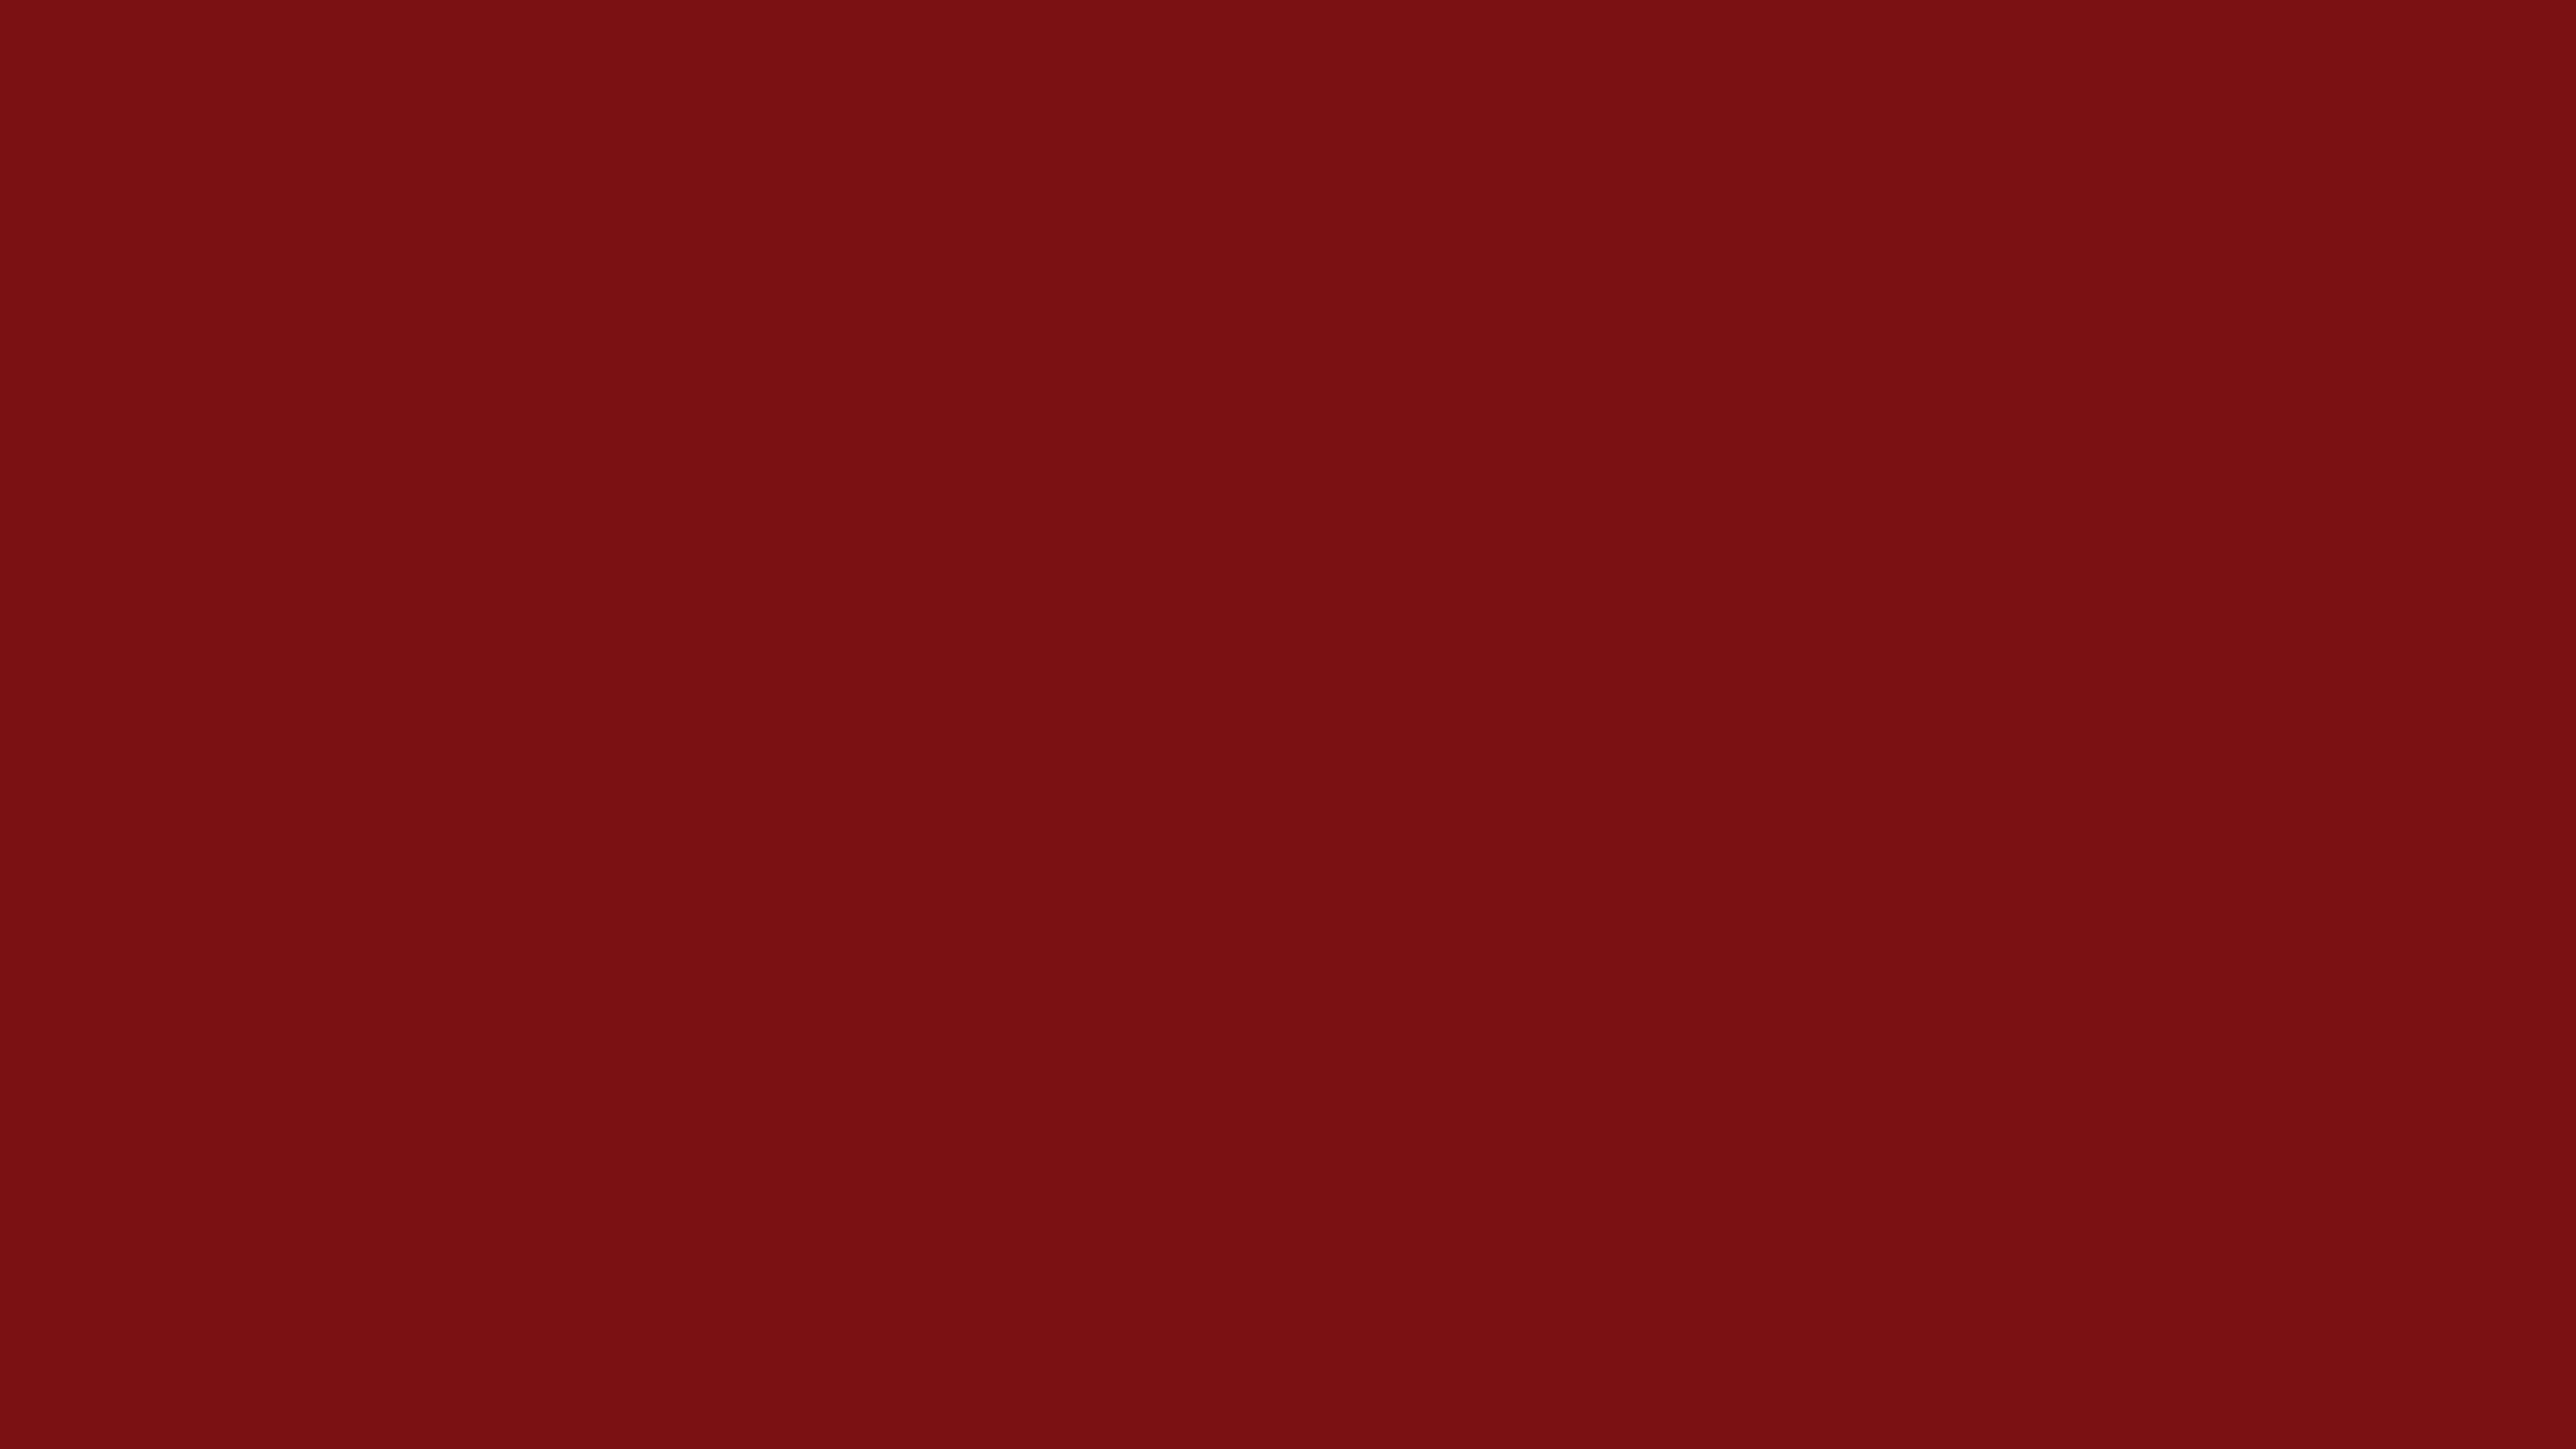 5120x2880 UP Maroon Solid Color Background